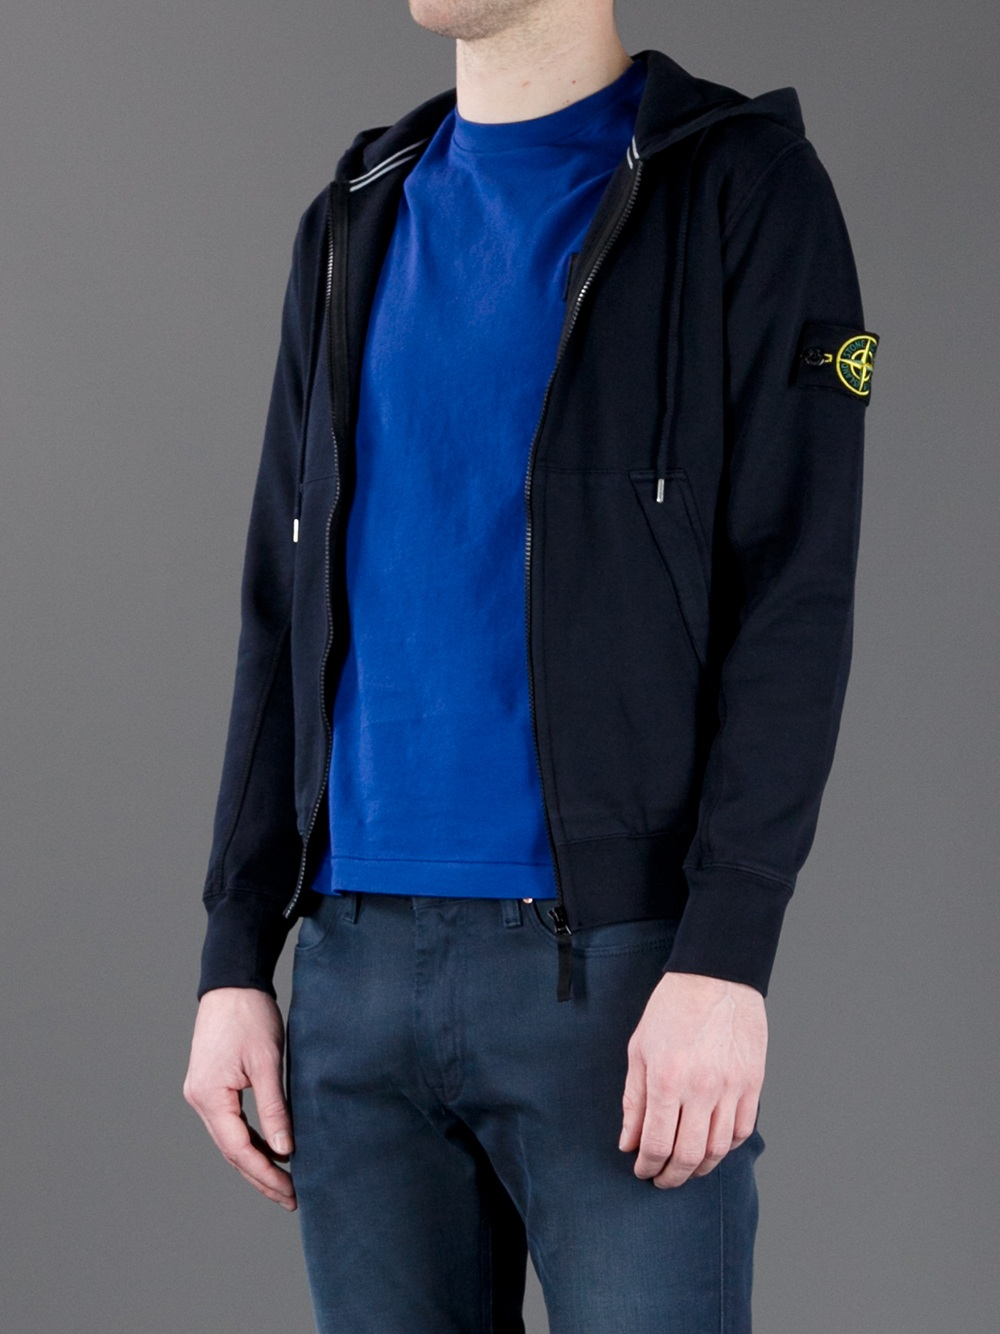 stone island dark navy full-zip sweatshirt -